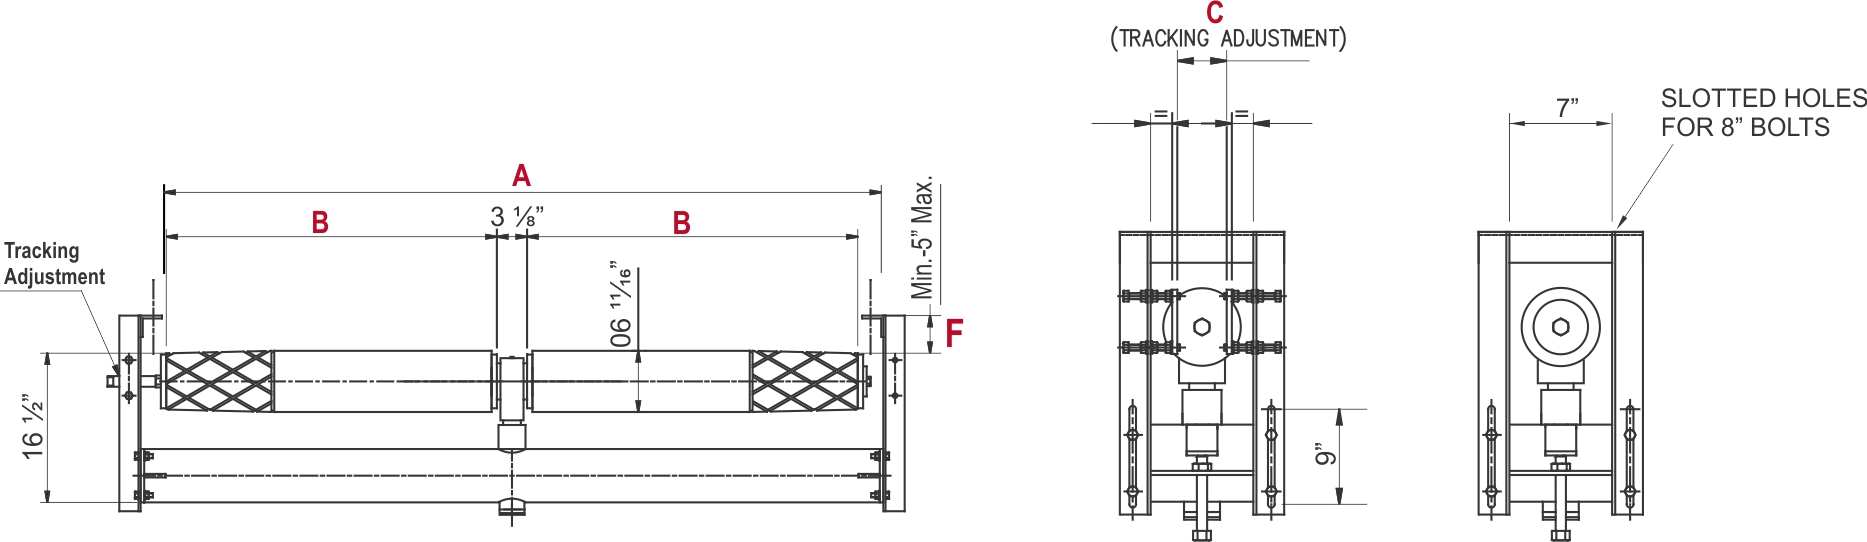 TruTrainer Dual Return Idler_Drawing_web